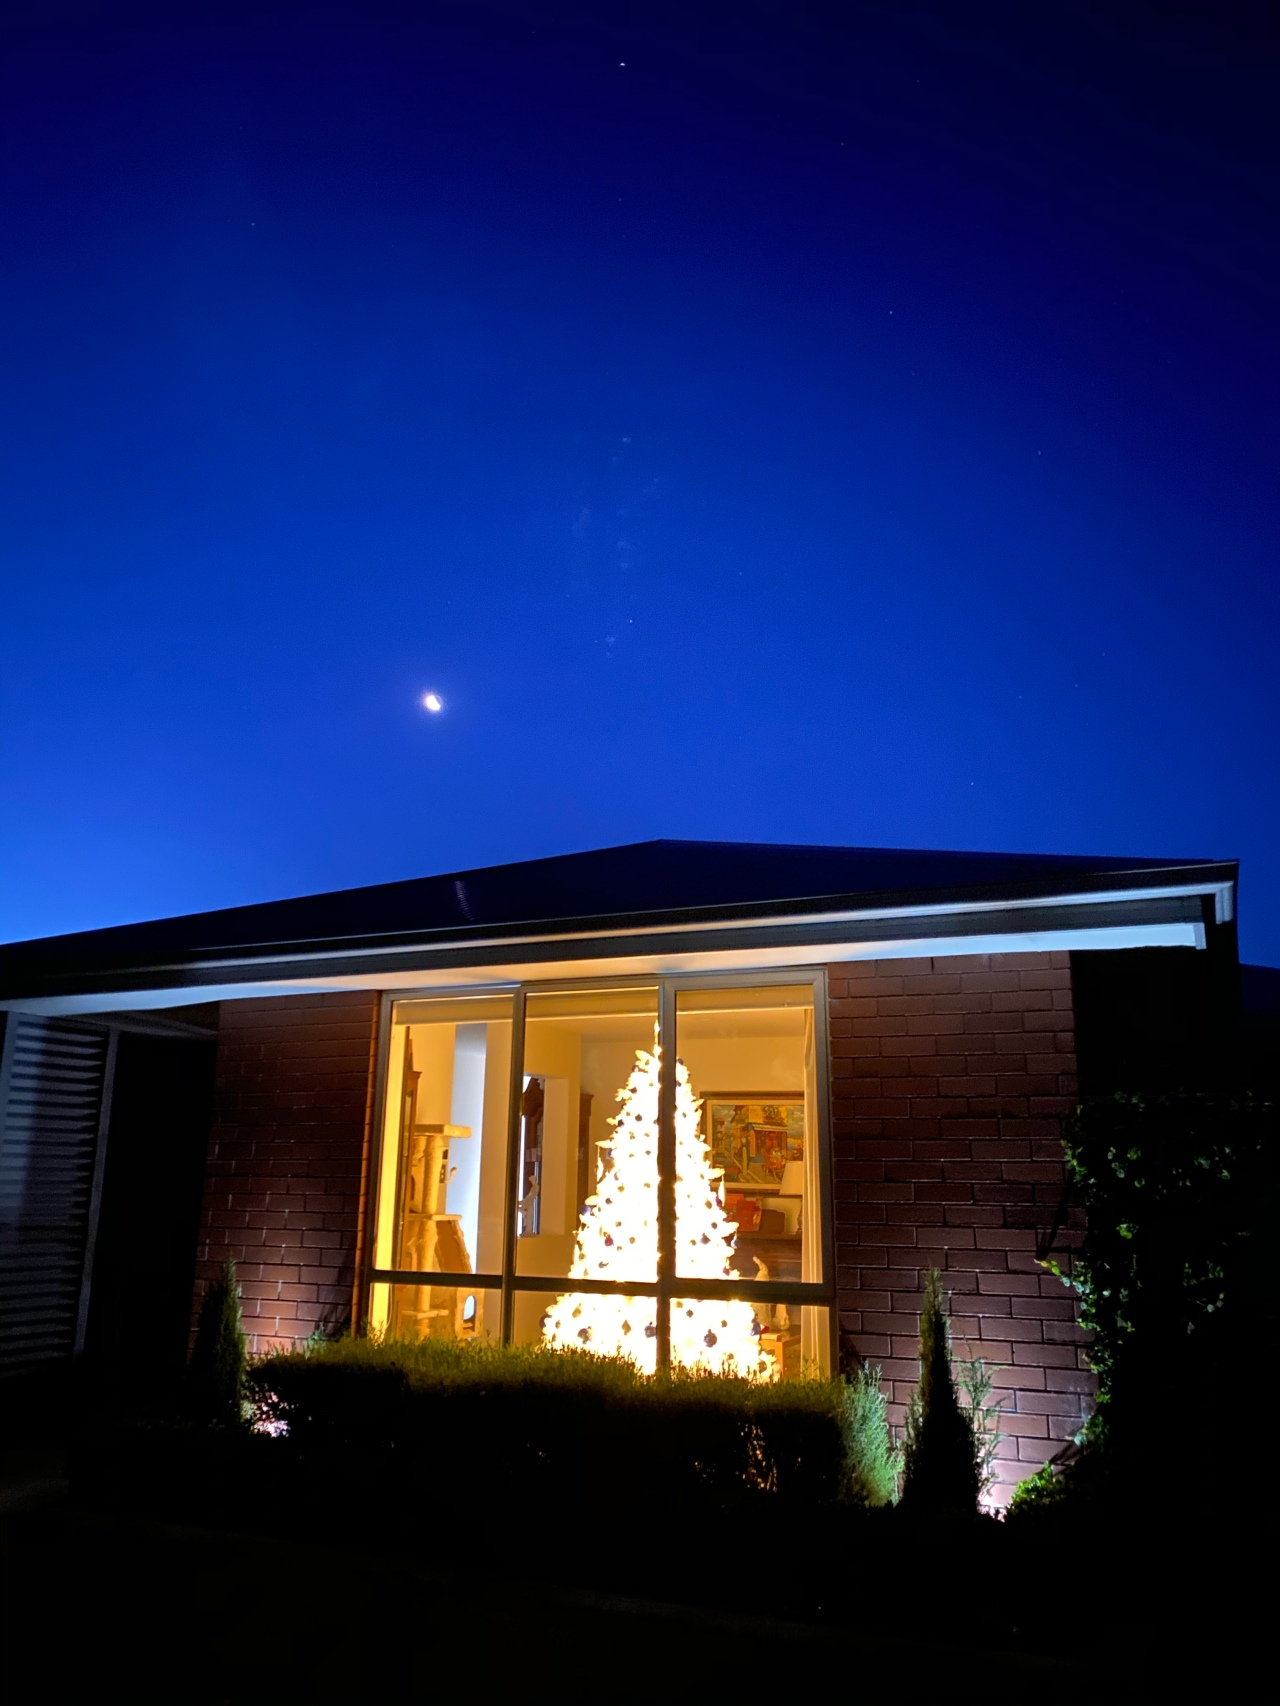 White Christmas tree illuminated in the front window of a house with a twilight darkening blue sky and the moon illuminated in the sky